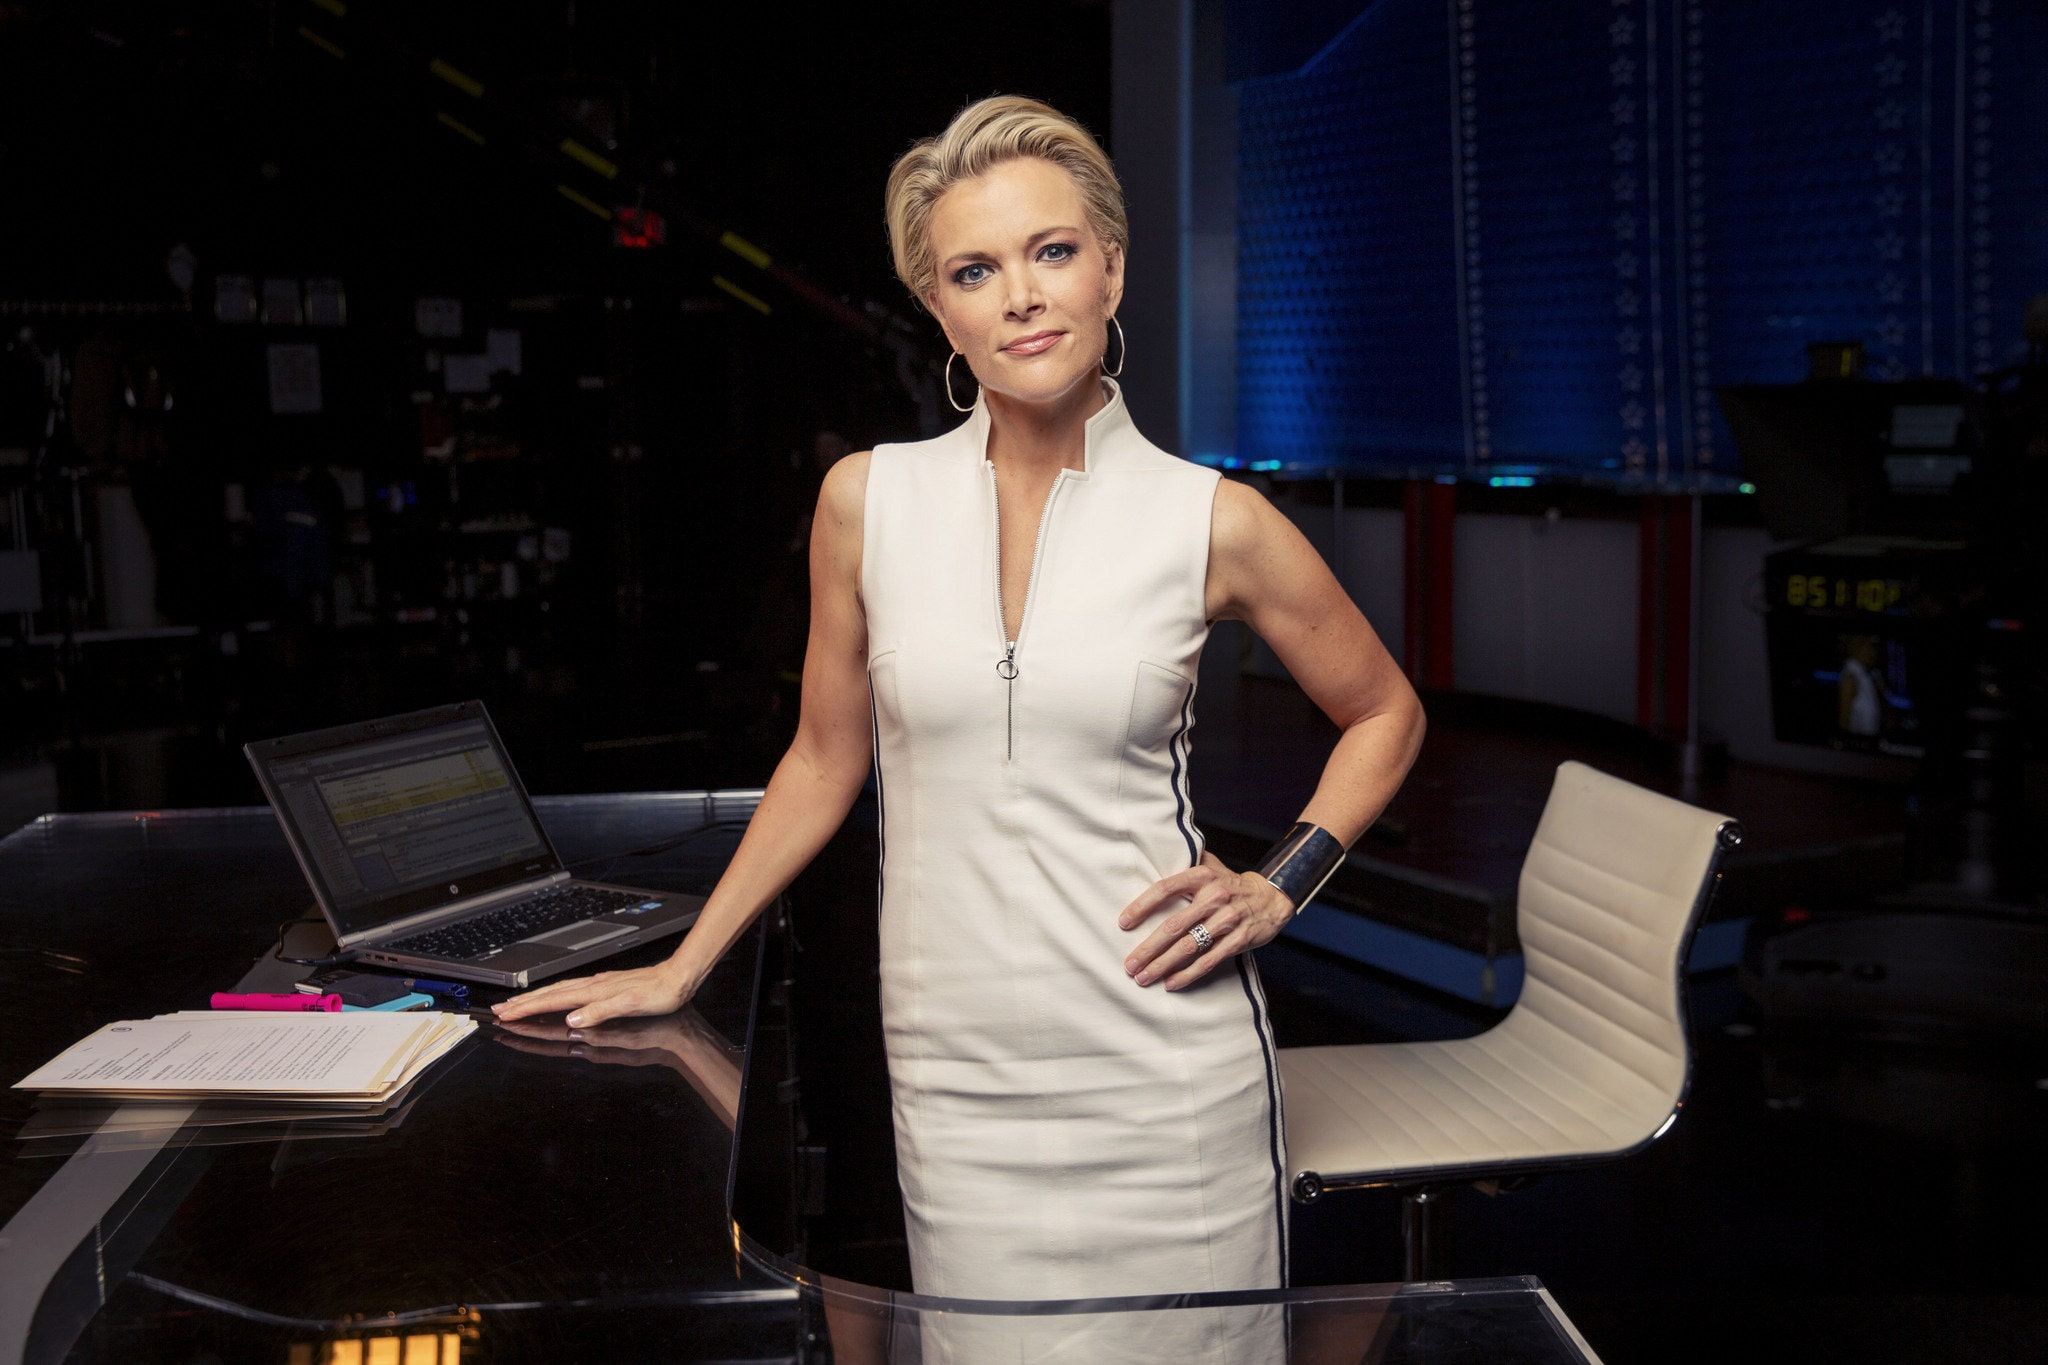 Are absolutely megyn kelly pantyhose strange can